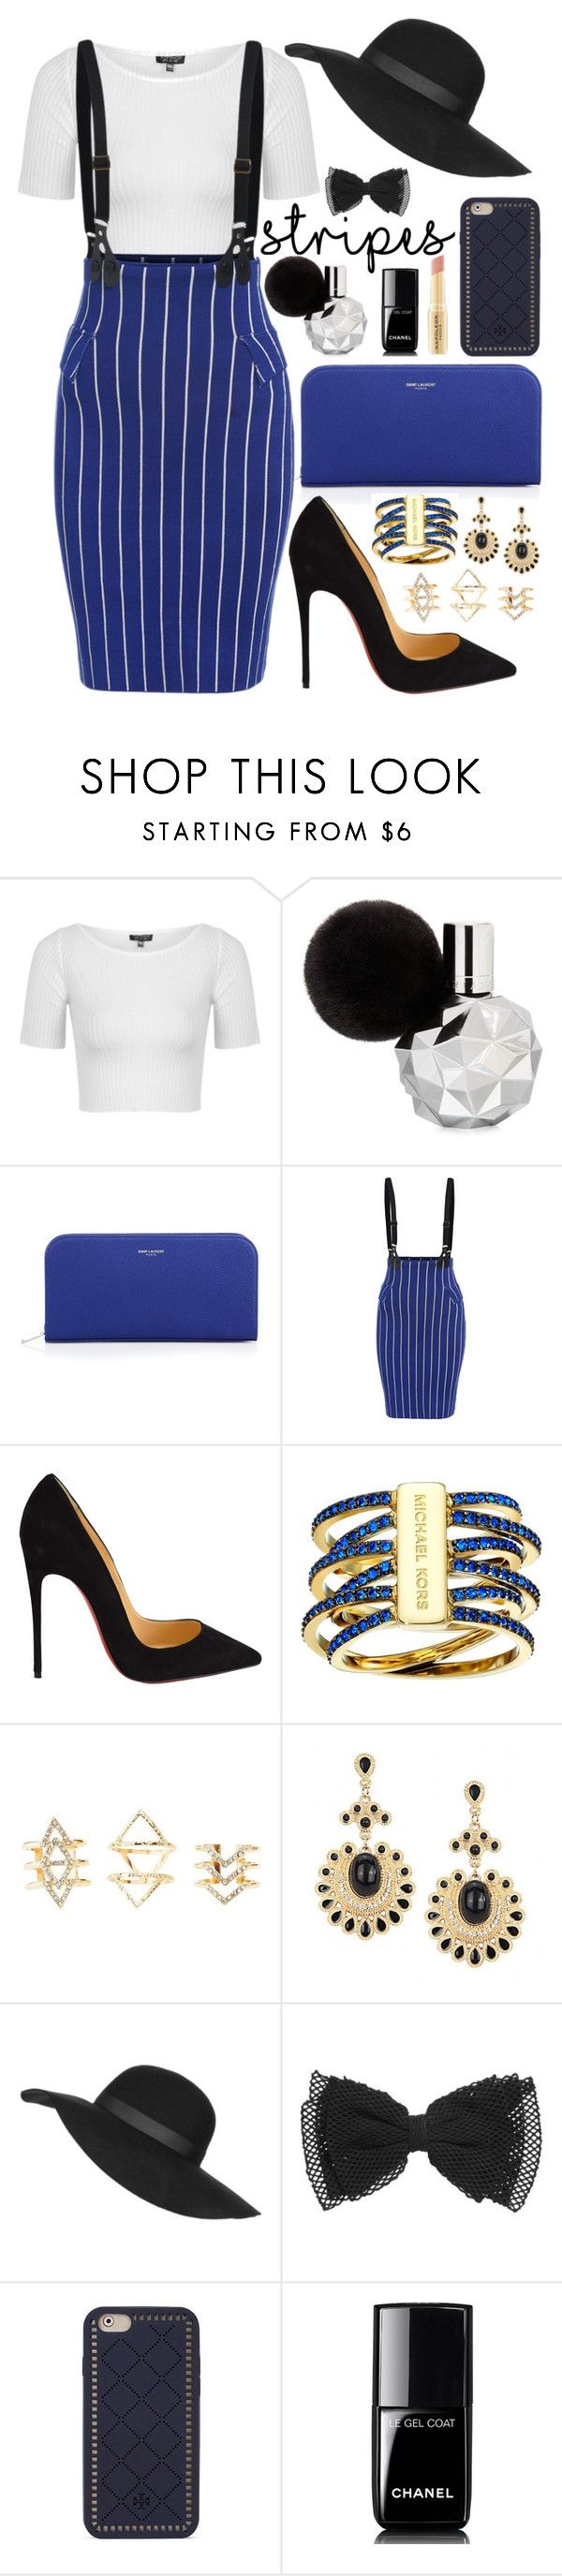 """He loves me with every beat of his cocaine heart"" by dinosaurrawr ❤ liked on Polyvore featuring Topshop, Yves Saint Laurent, Christian Louboutin, Michael Kors, Charlotte Russe, Tory Burch, Chanel and Napoleon Perdis"